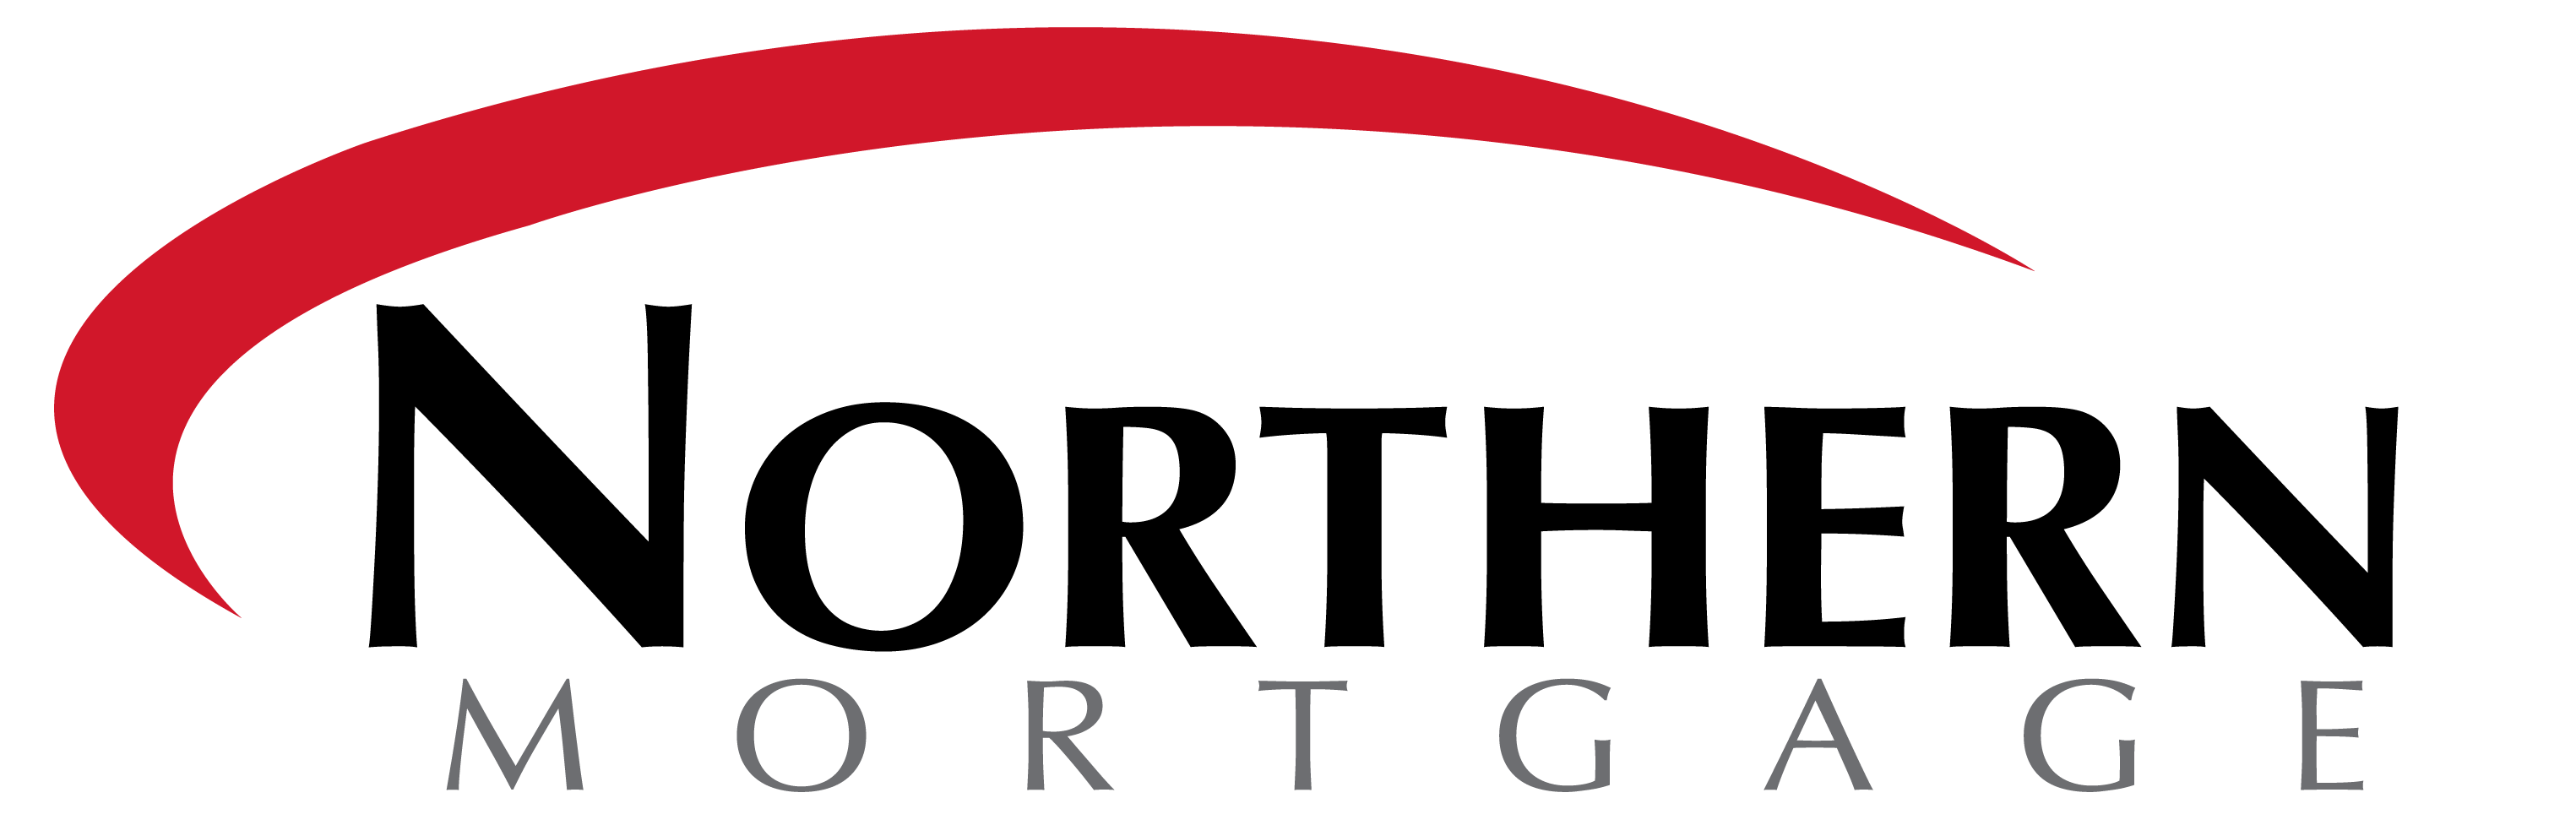 Northern Mortgage Services LLC | Helping Make a House Your Home